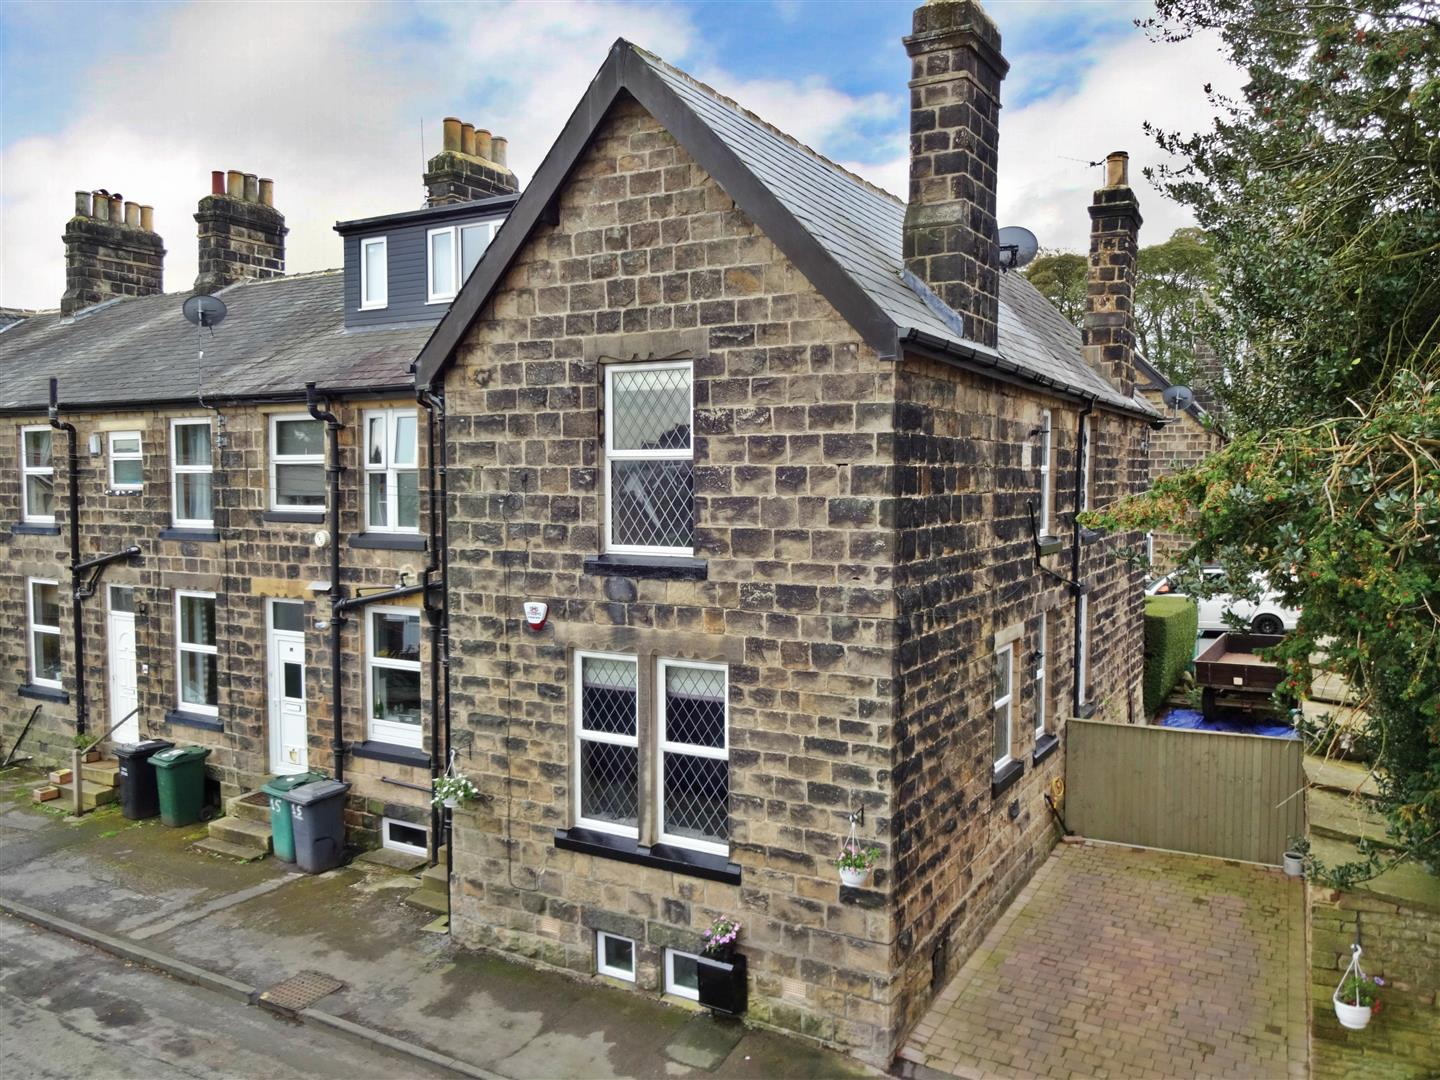 North View, Menston, LS29 6JU